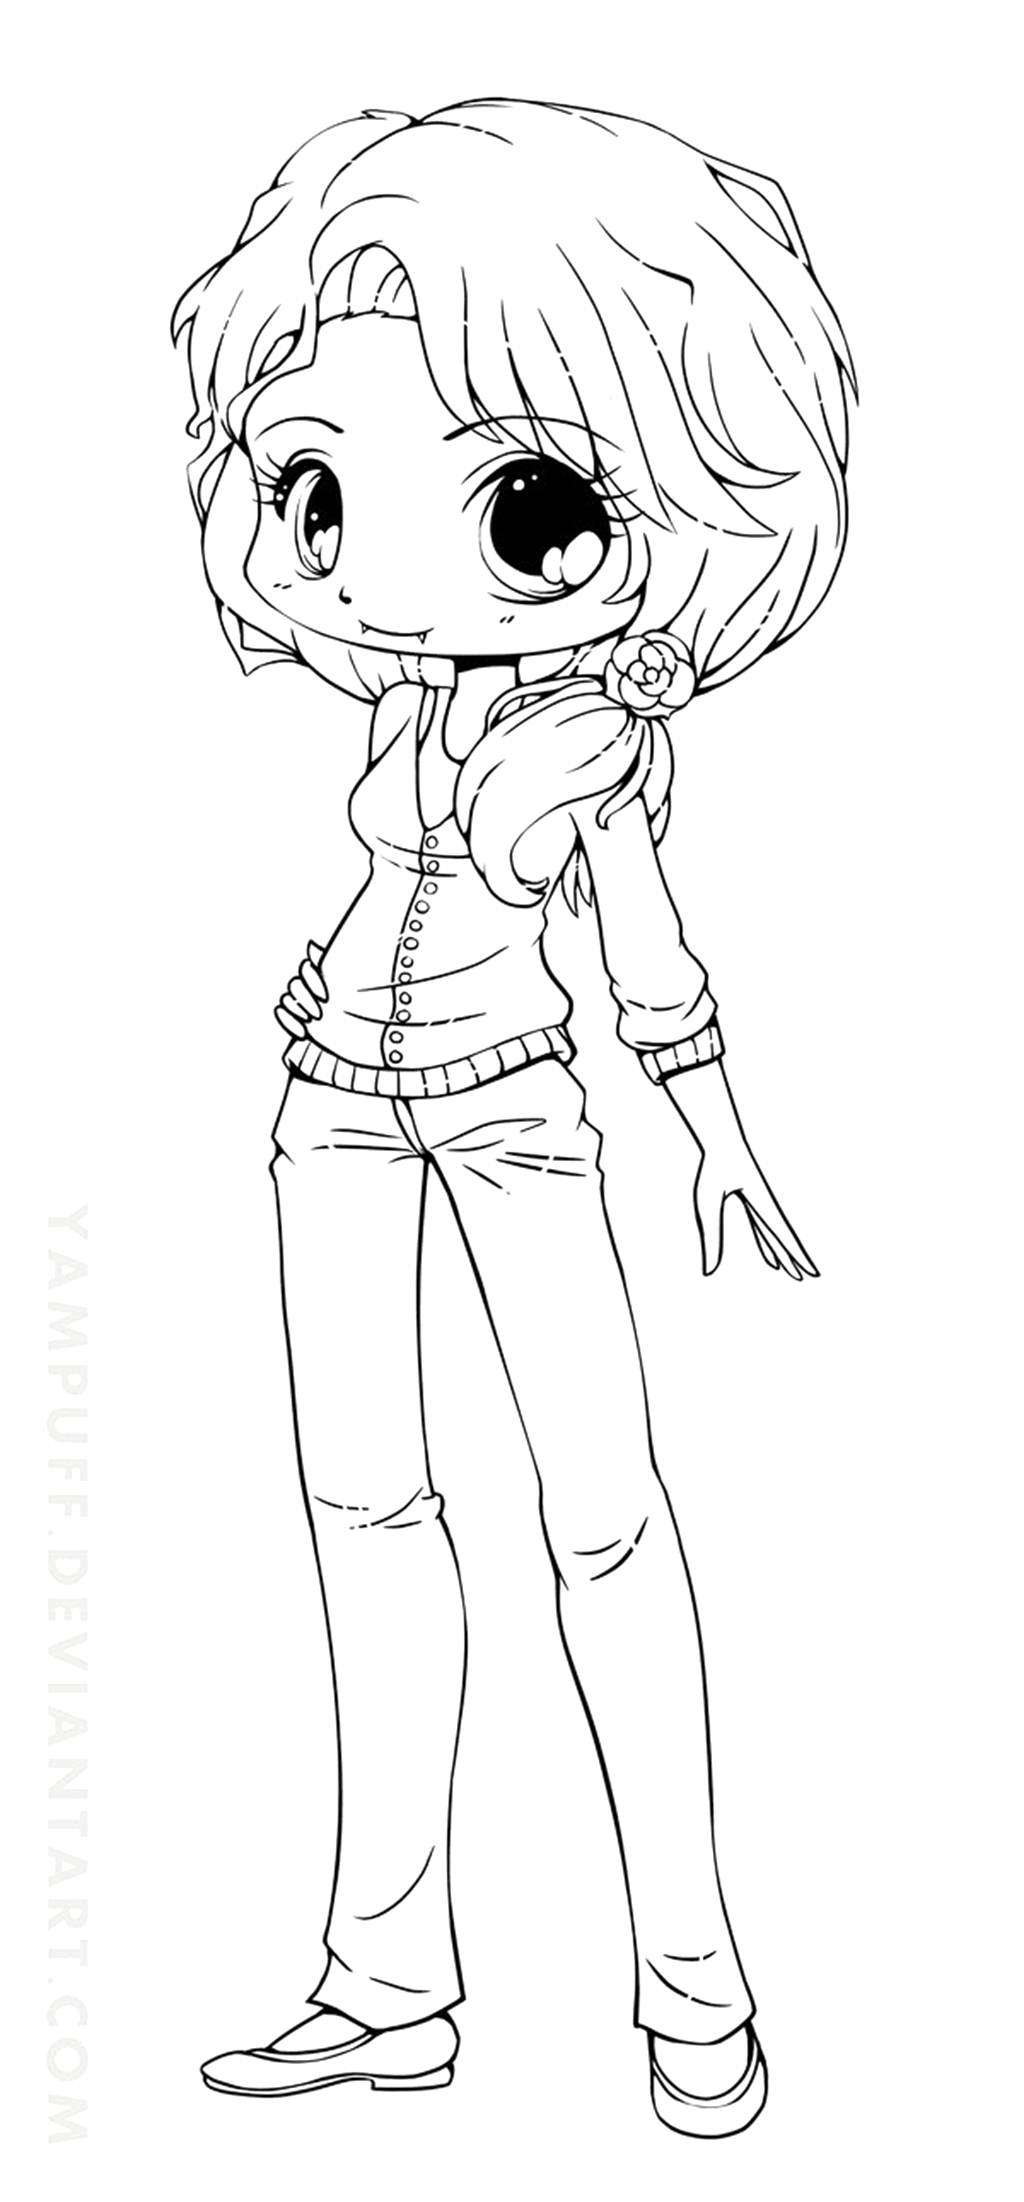 anime coloring pages easy easy coloring pages for girls coloring page female anime anime pages easy coloring